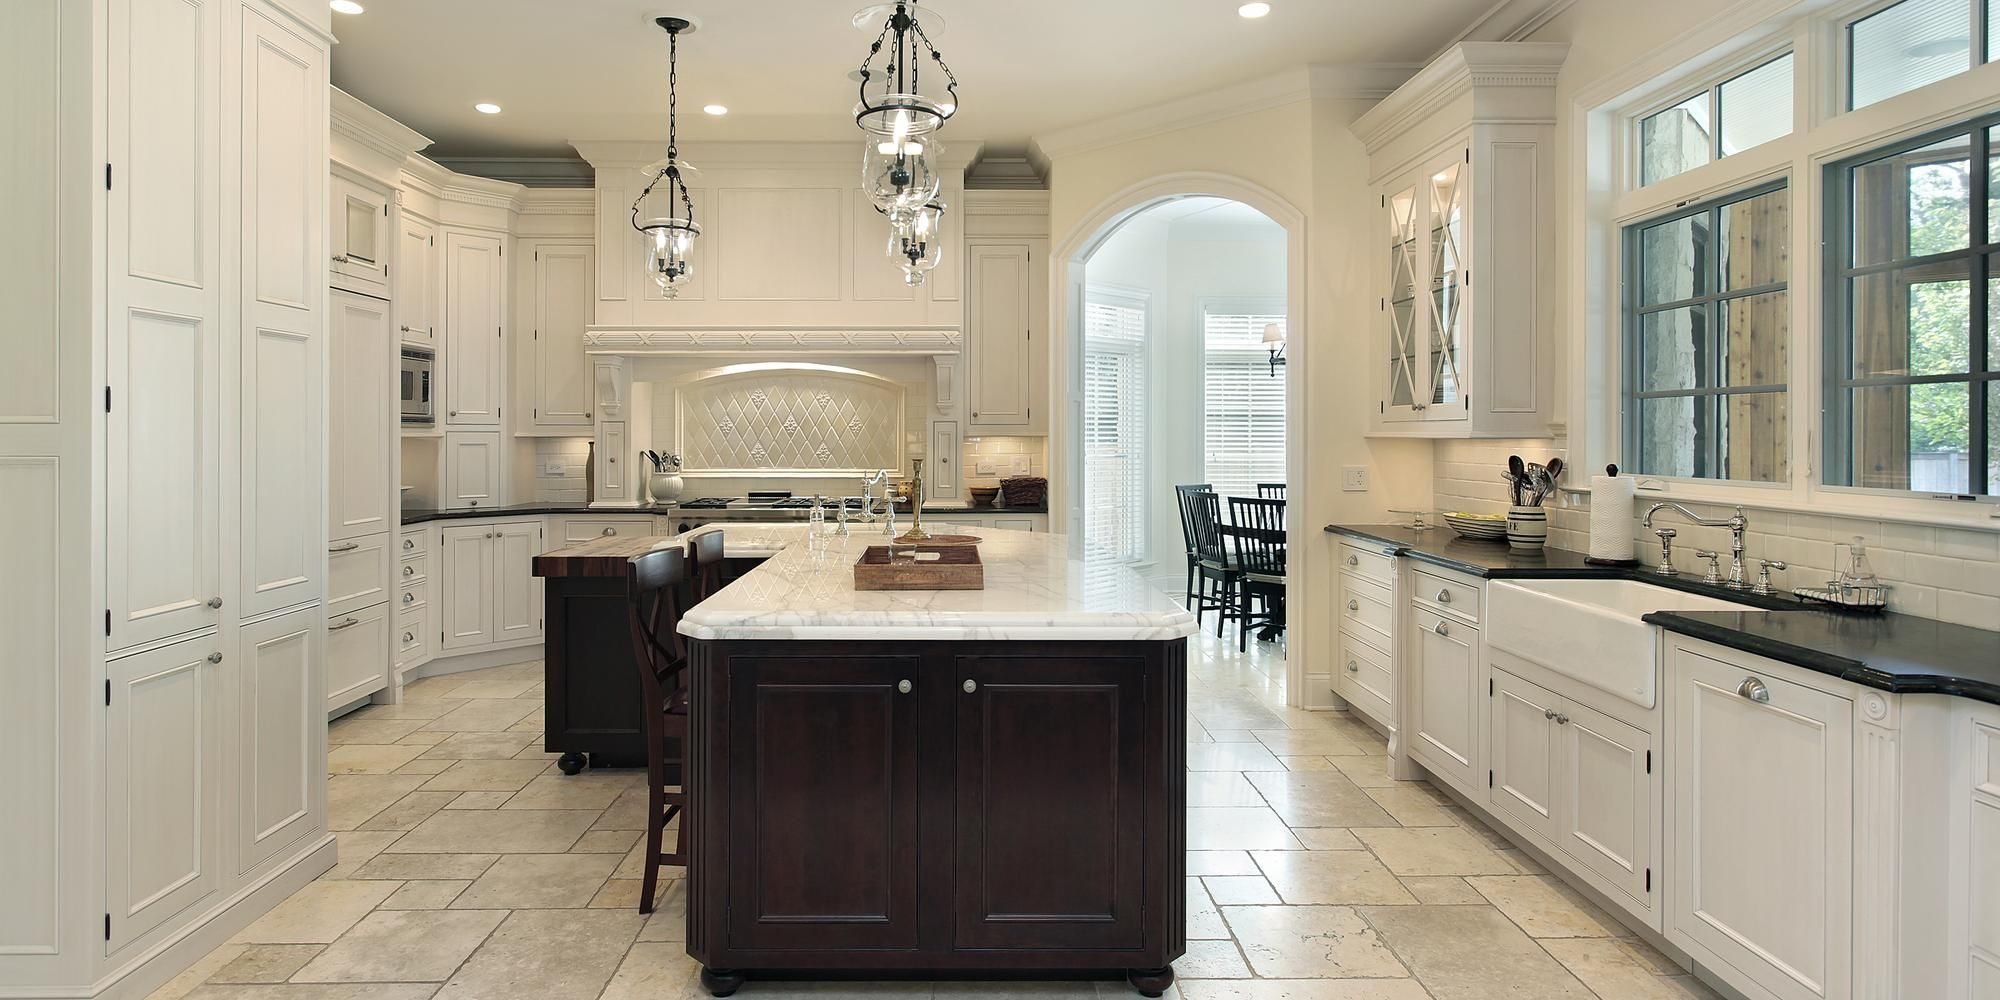 3 Tips To Choose Floor Tiles For Your Kitchen Ceramic Tile Plus Exclusively Yours